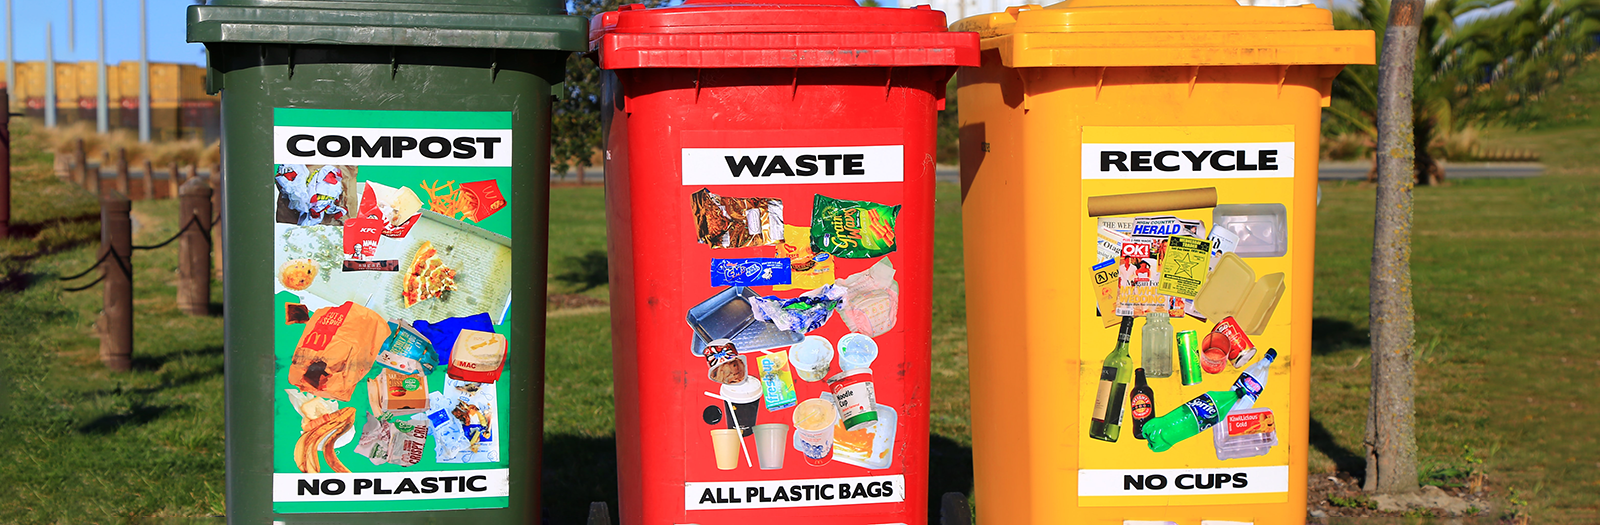 compost, waste and recycle bins